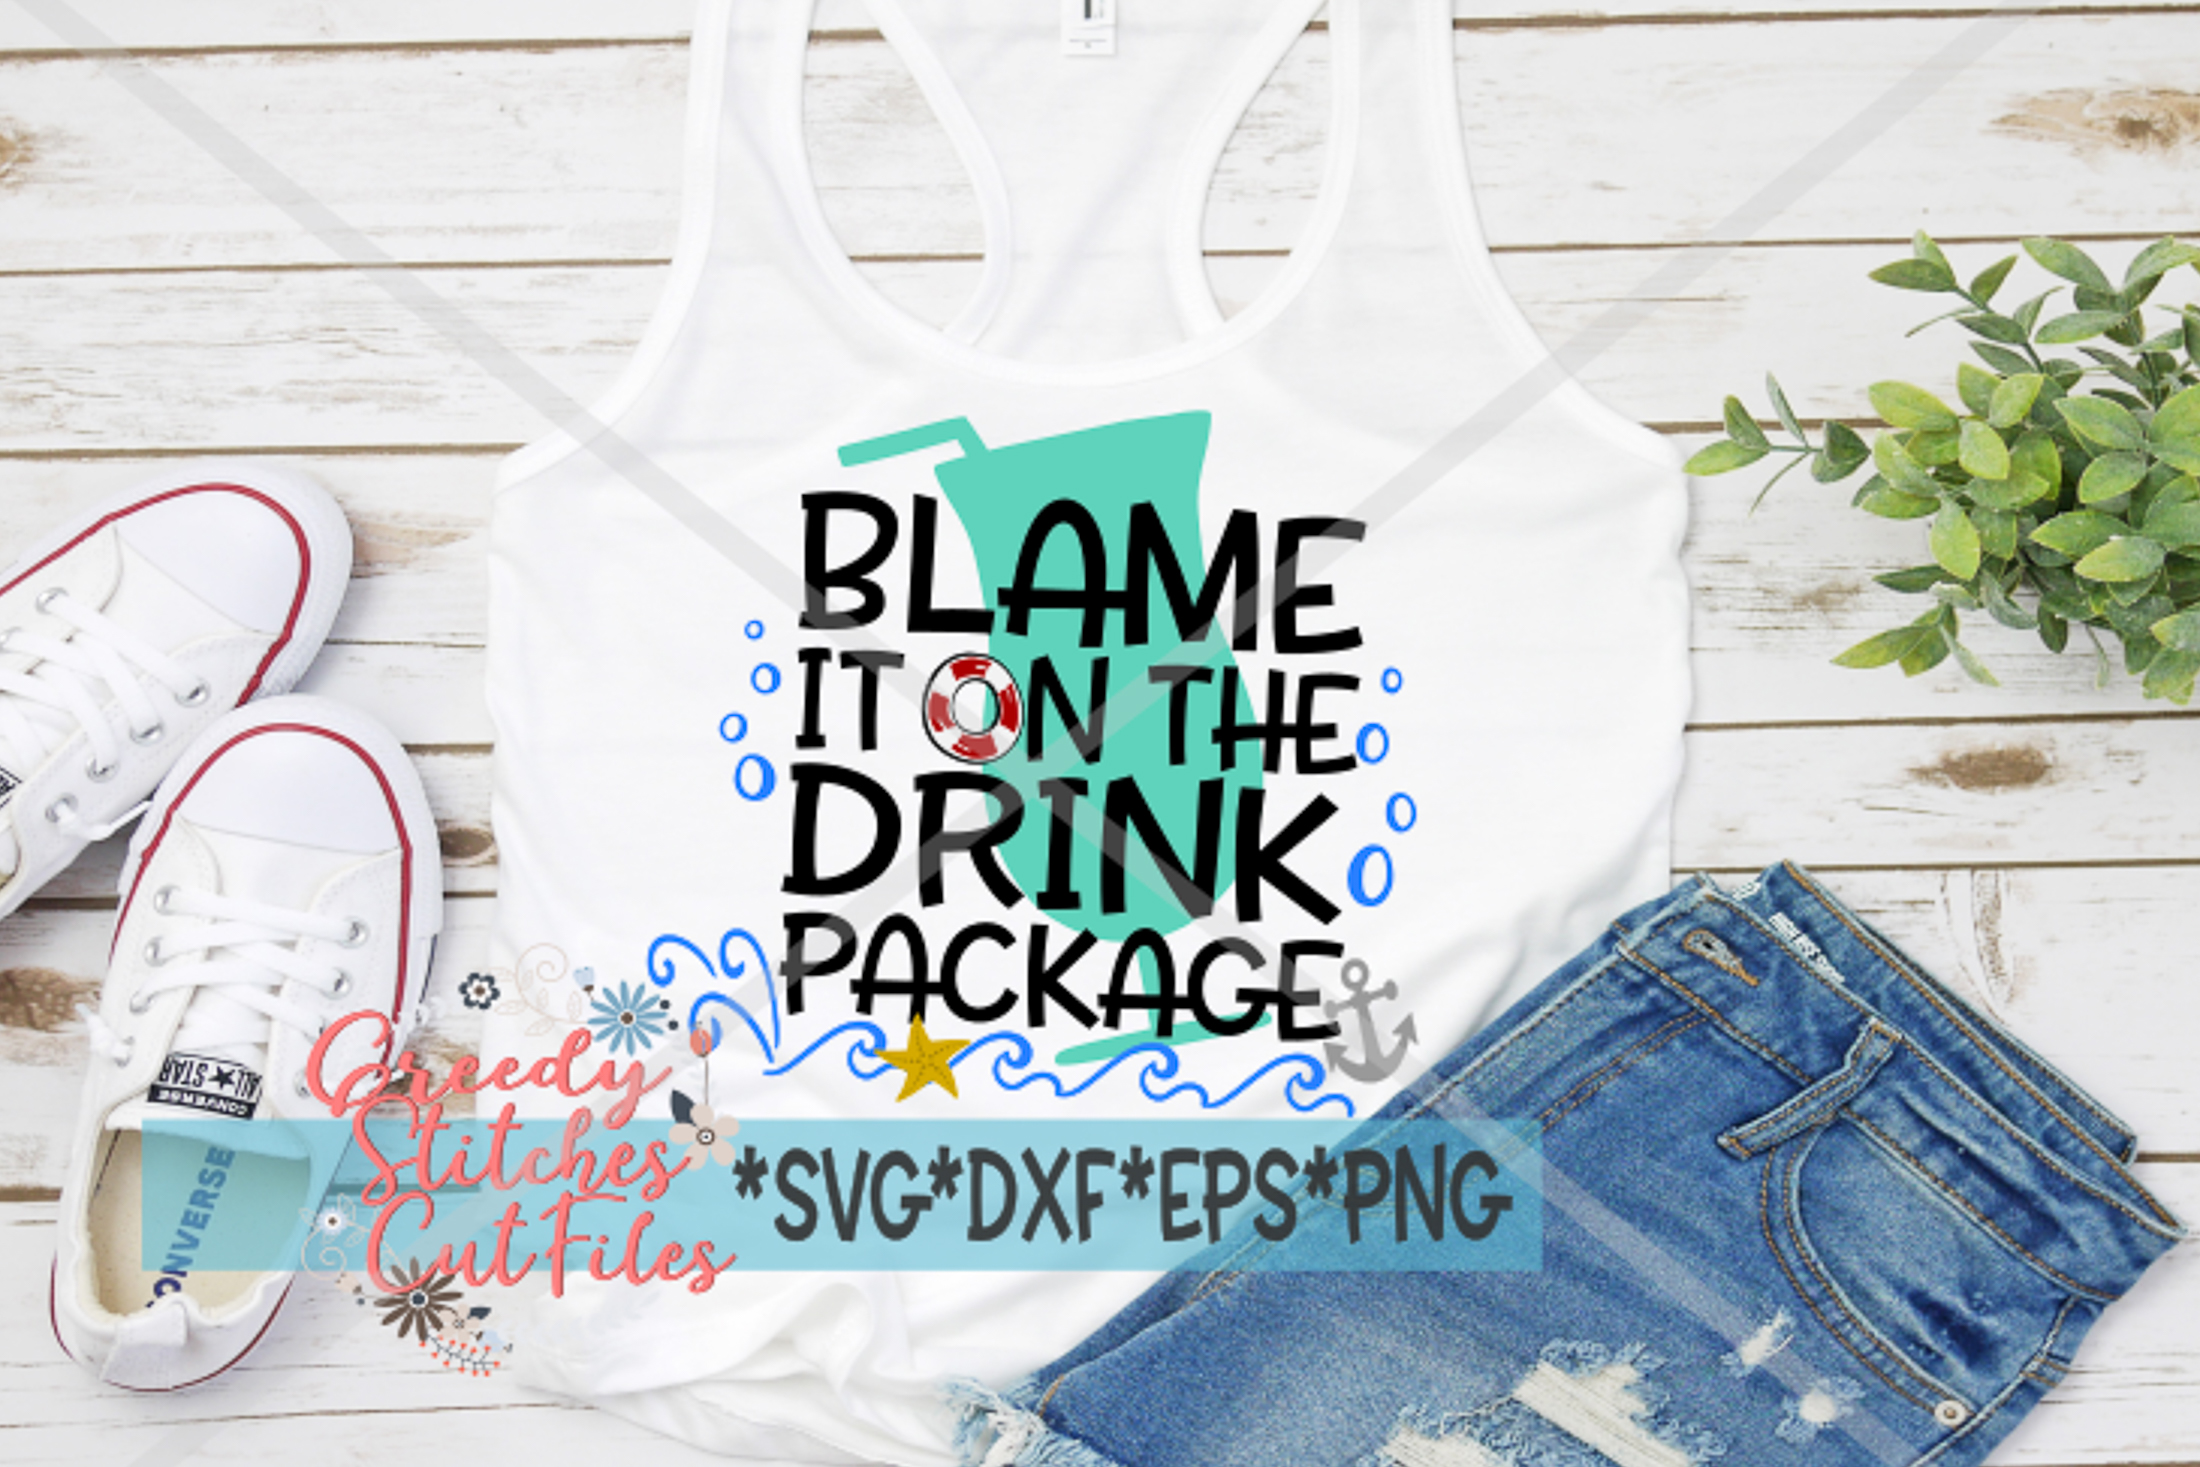 Blame It On The Drink Package Cruise SVG DXF EPS PNG example image 3